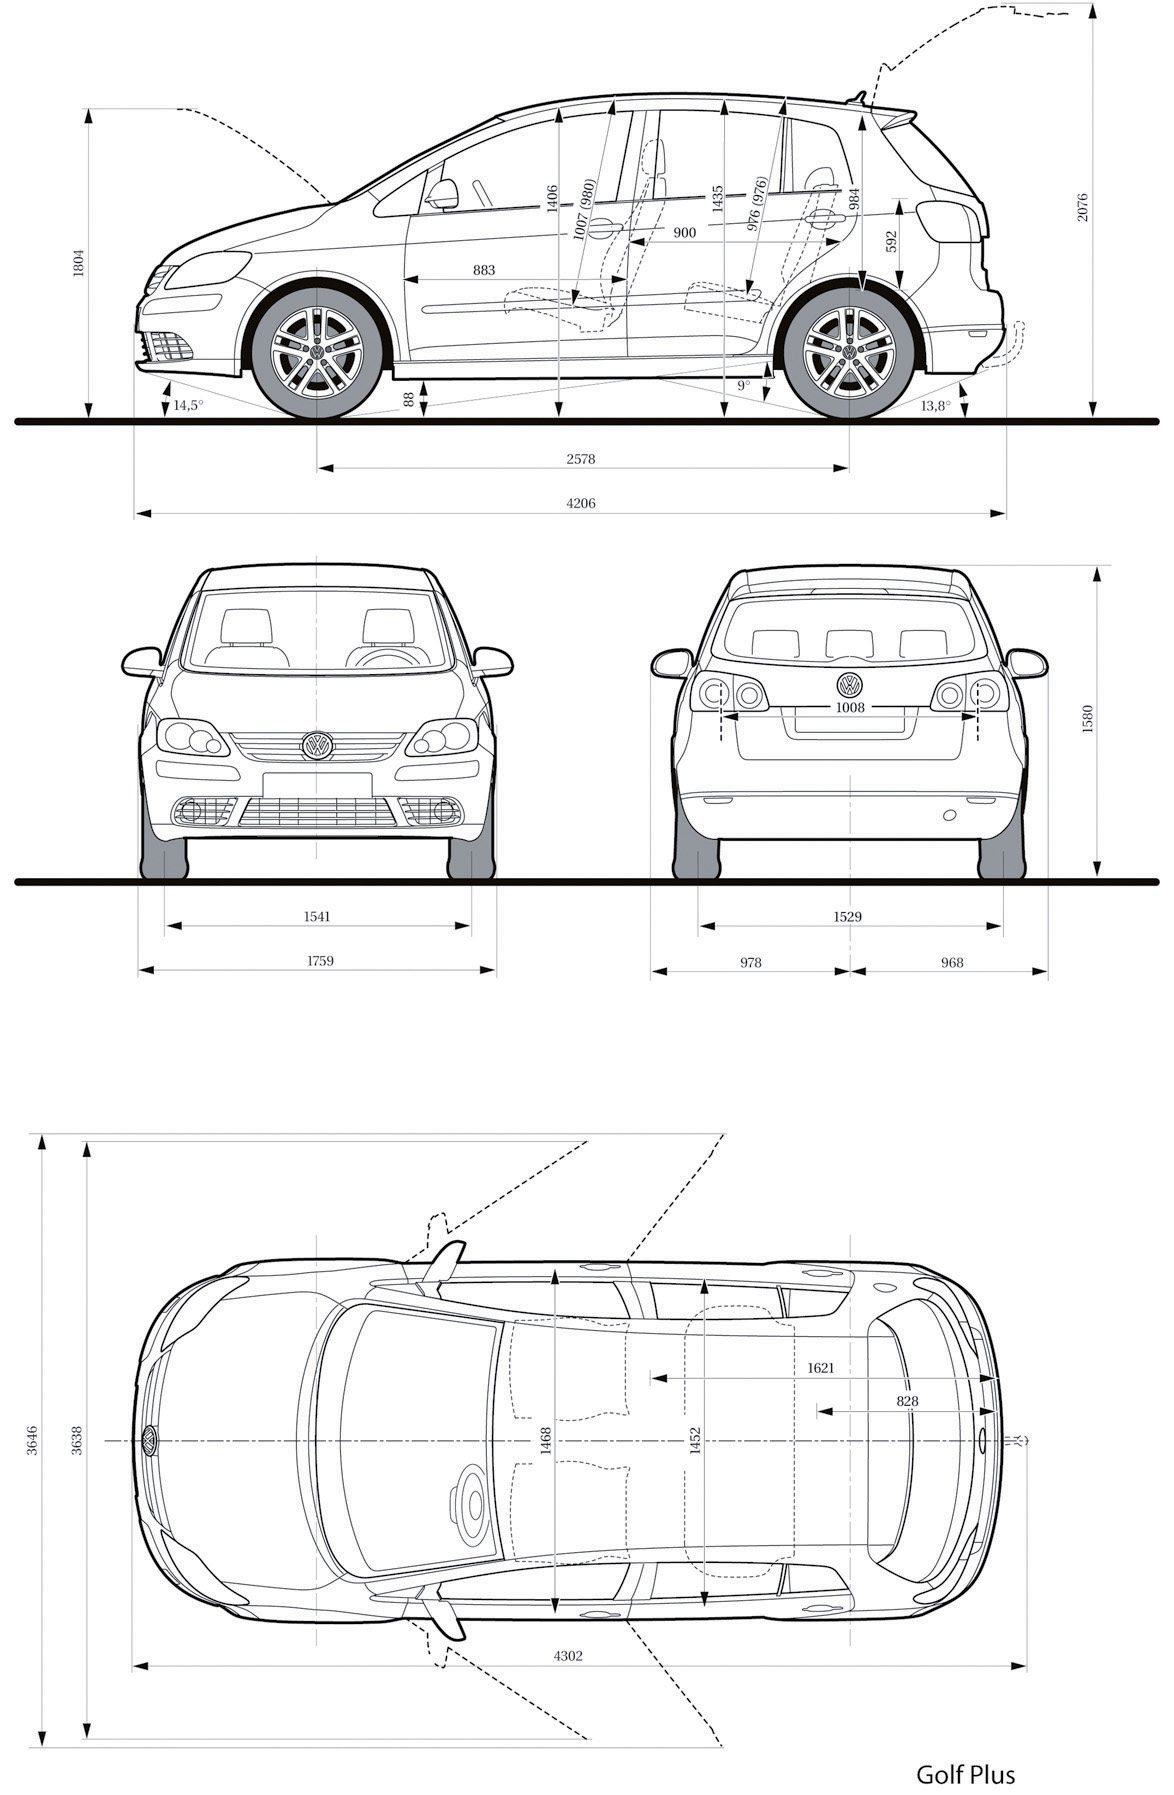 Volkswagen Golf Plus 2005 Blueprint Download Free